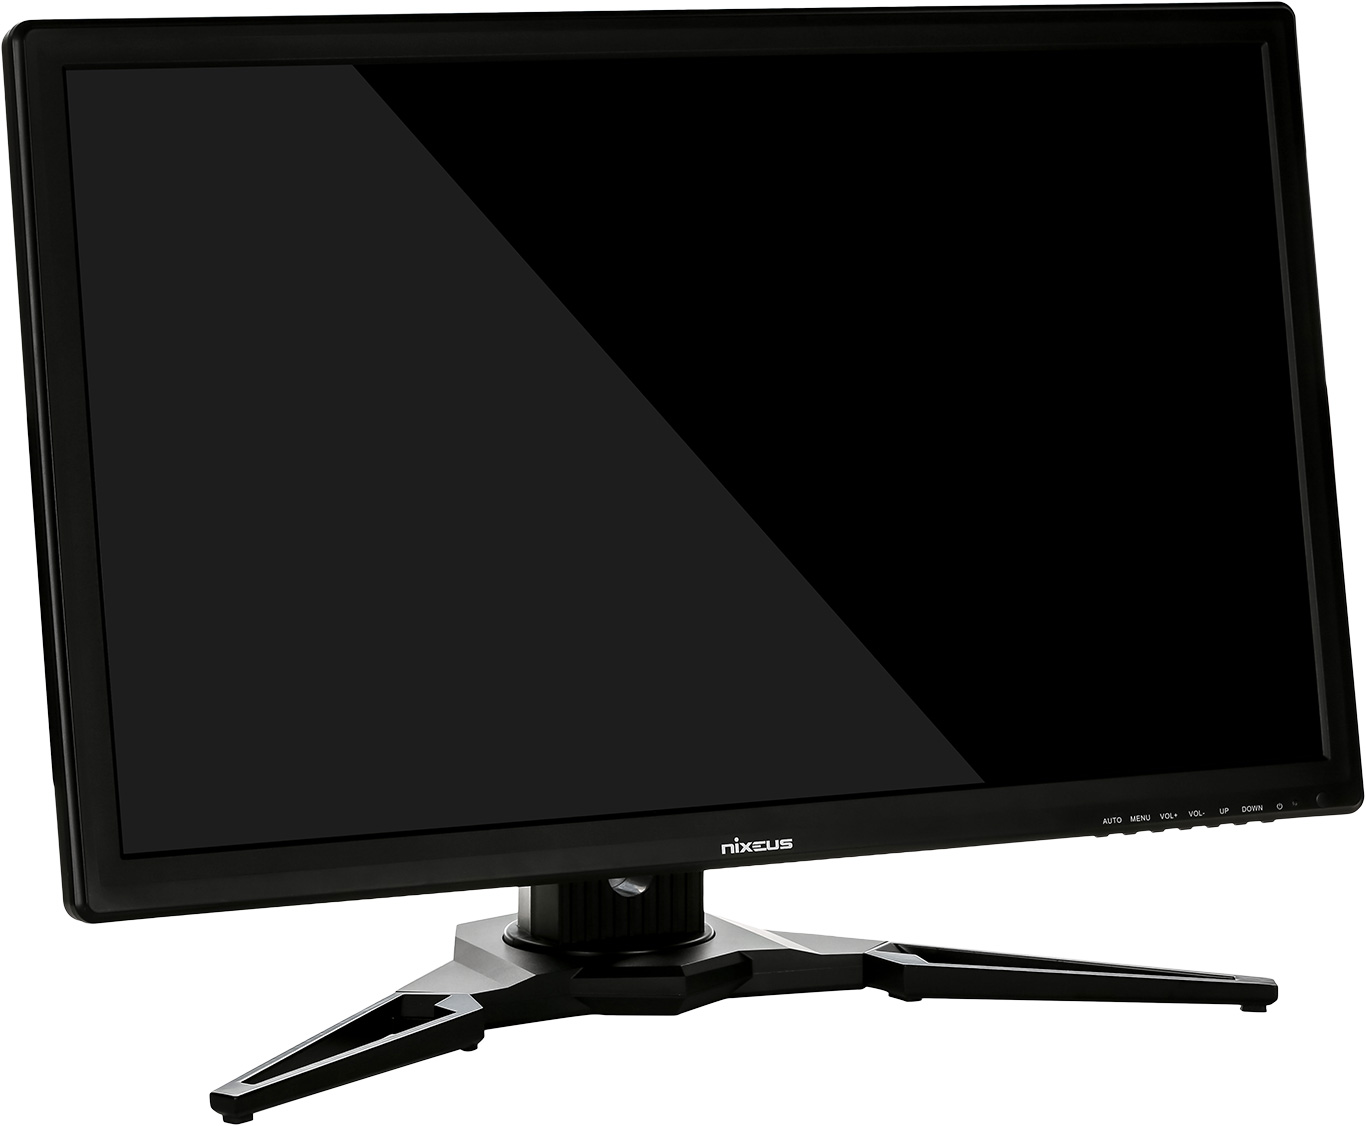 Nixeus EDG 27 IPS Freesync 144Hz Gaming Monitor Review: Hitting The Sweet Spot